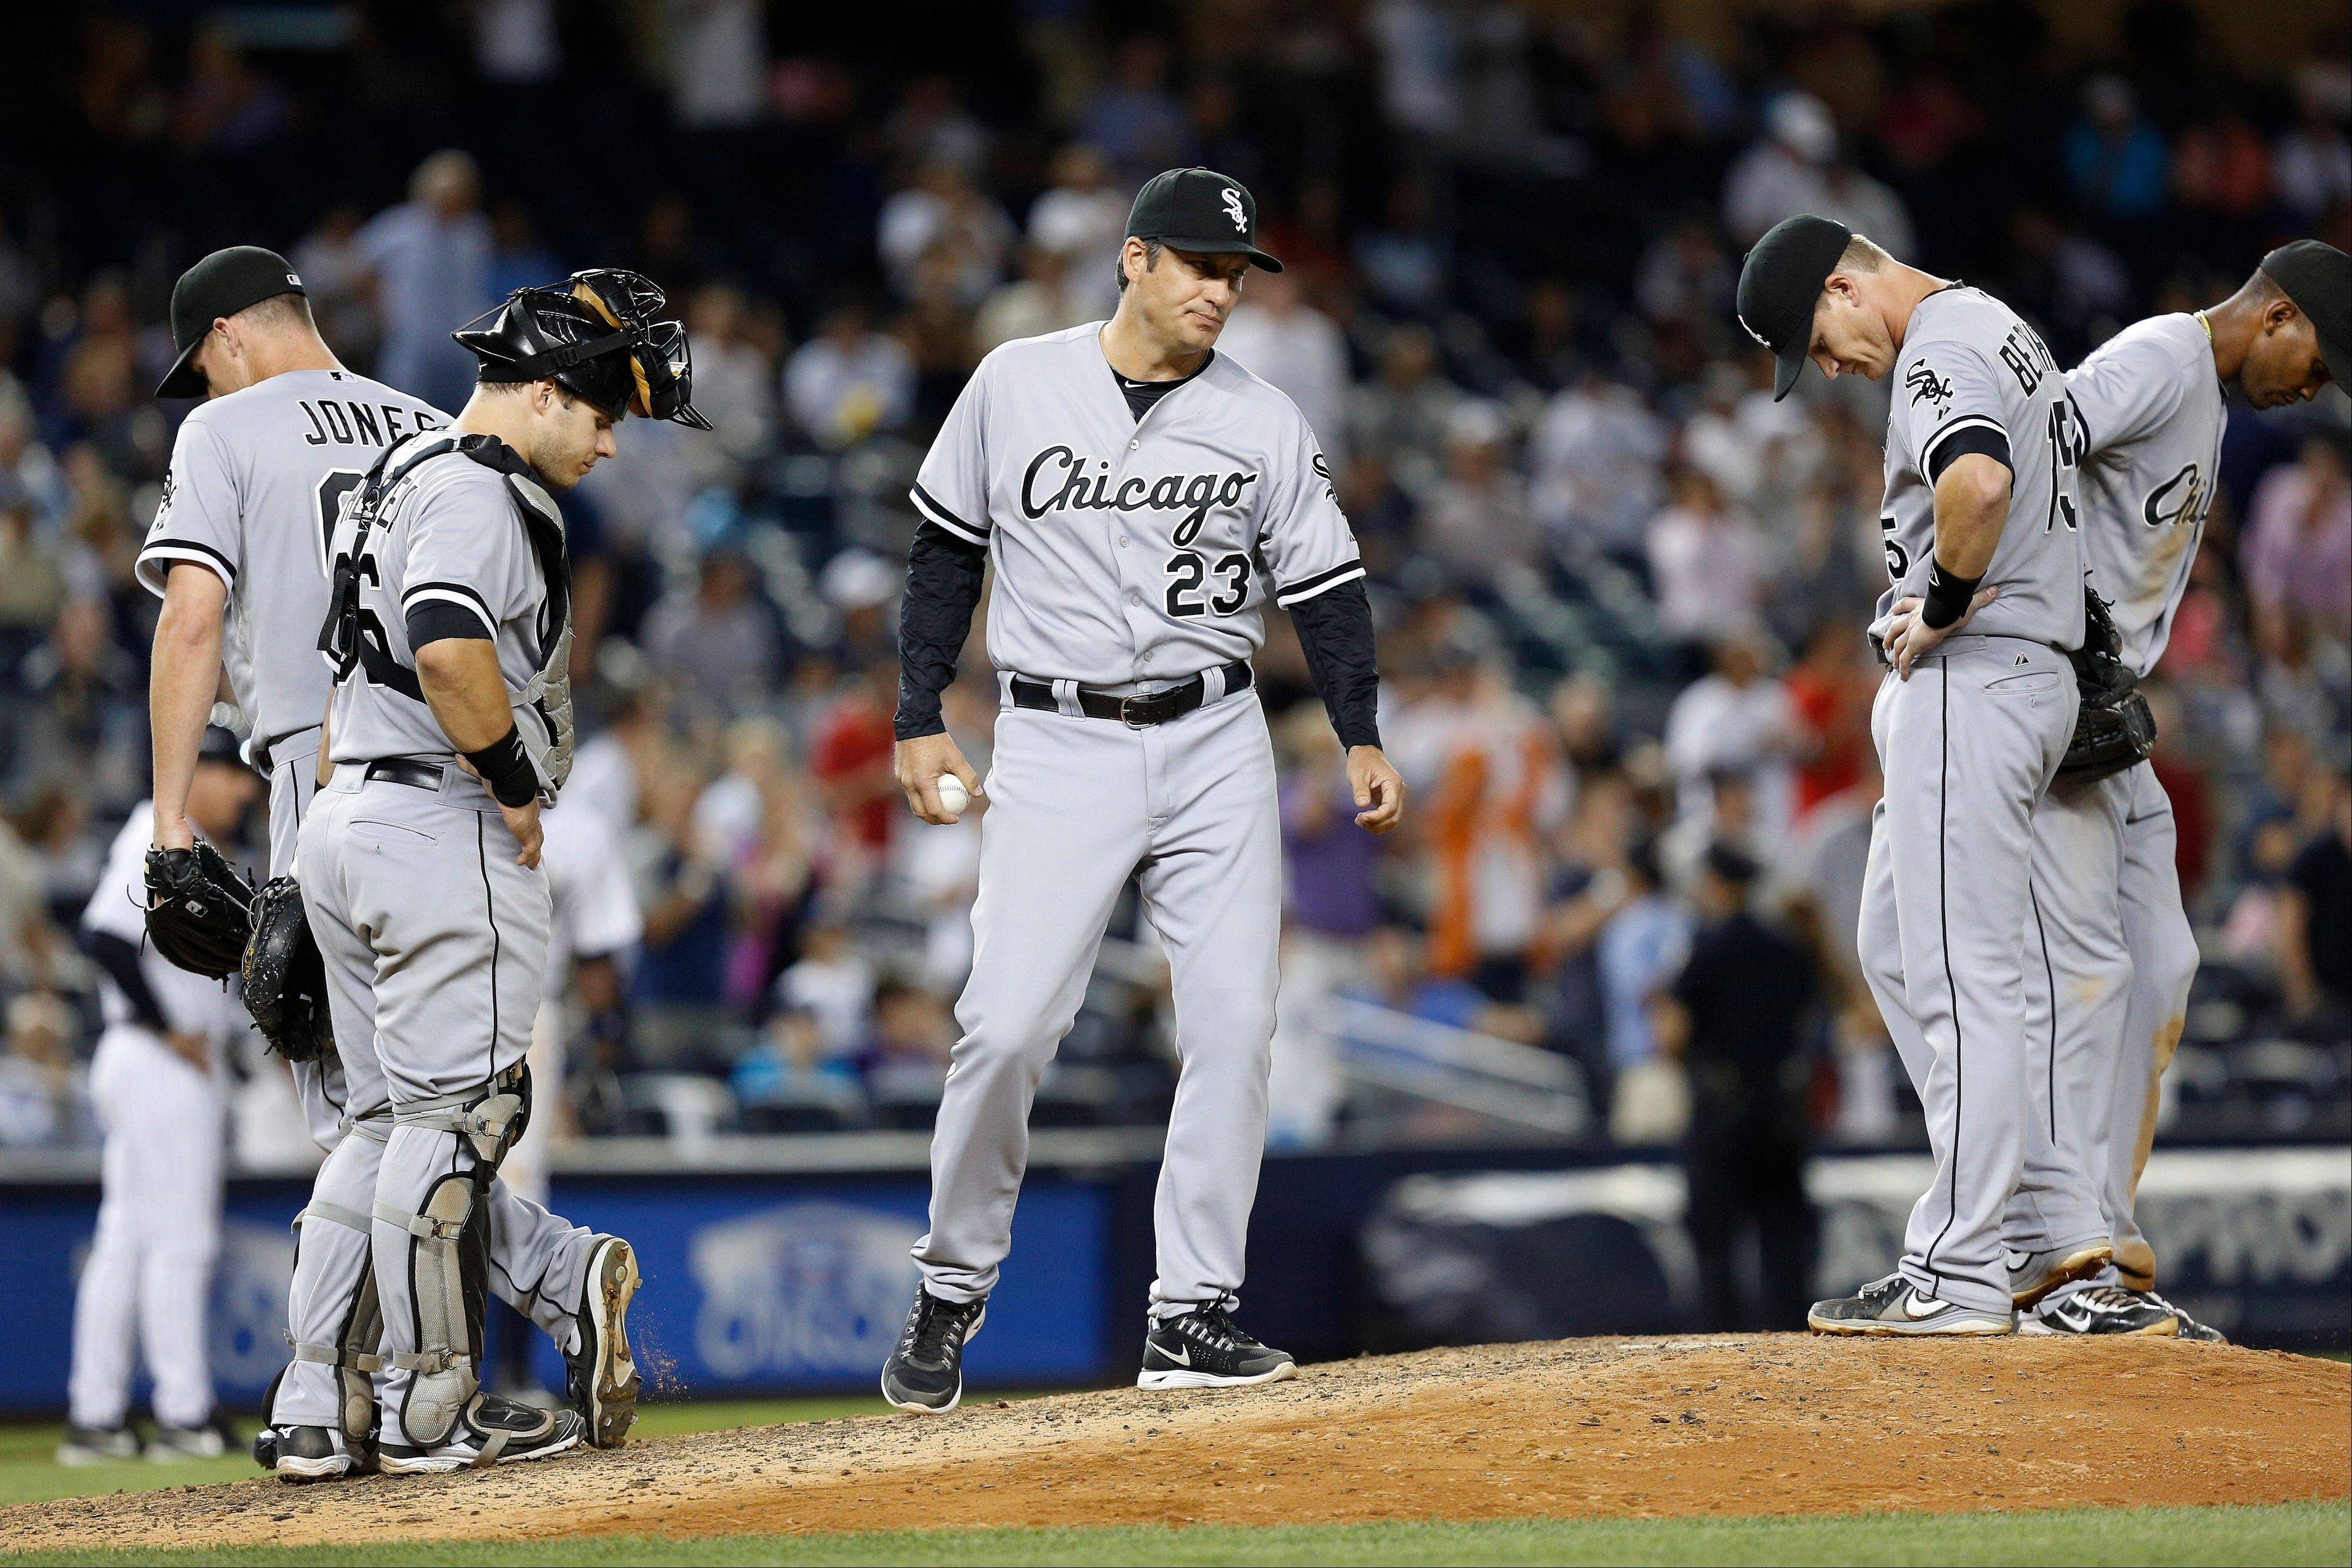 Chicago White Sox manager Robin Ventura (23) stands on the mound after removing relief pitcher Nate Jones (65) in the eighth inning of a baseball game against the New York Yankees at Yankee Stadium, Tuesday, Sept. 3, 2013, in New York.